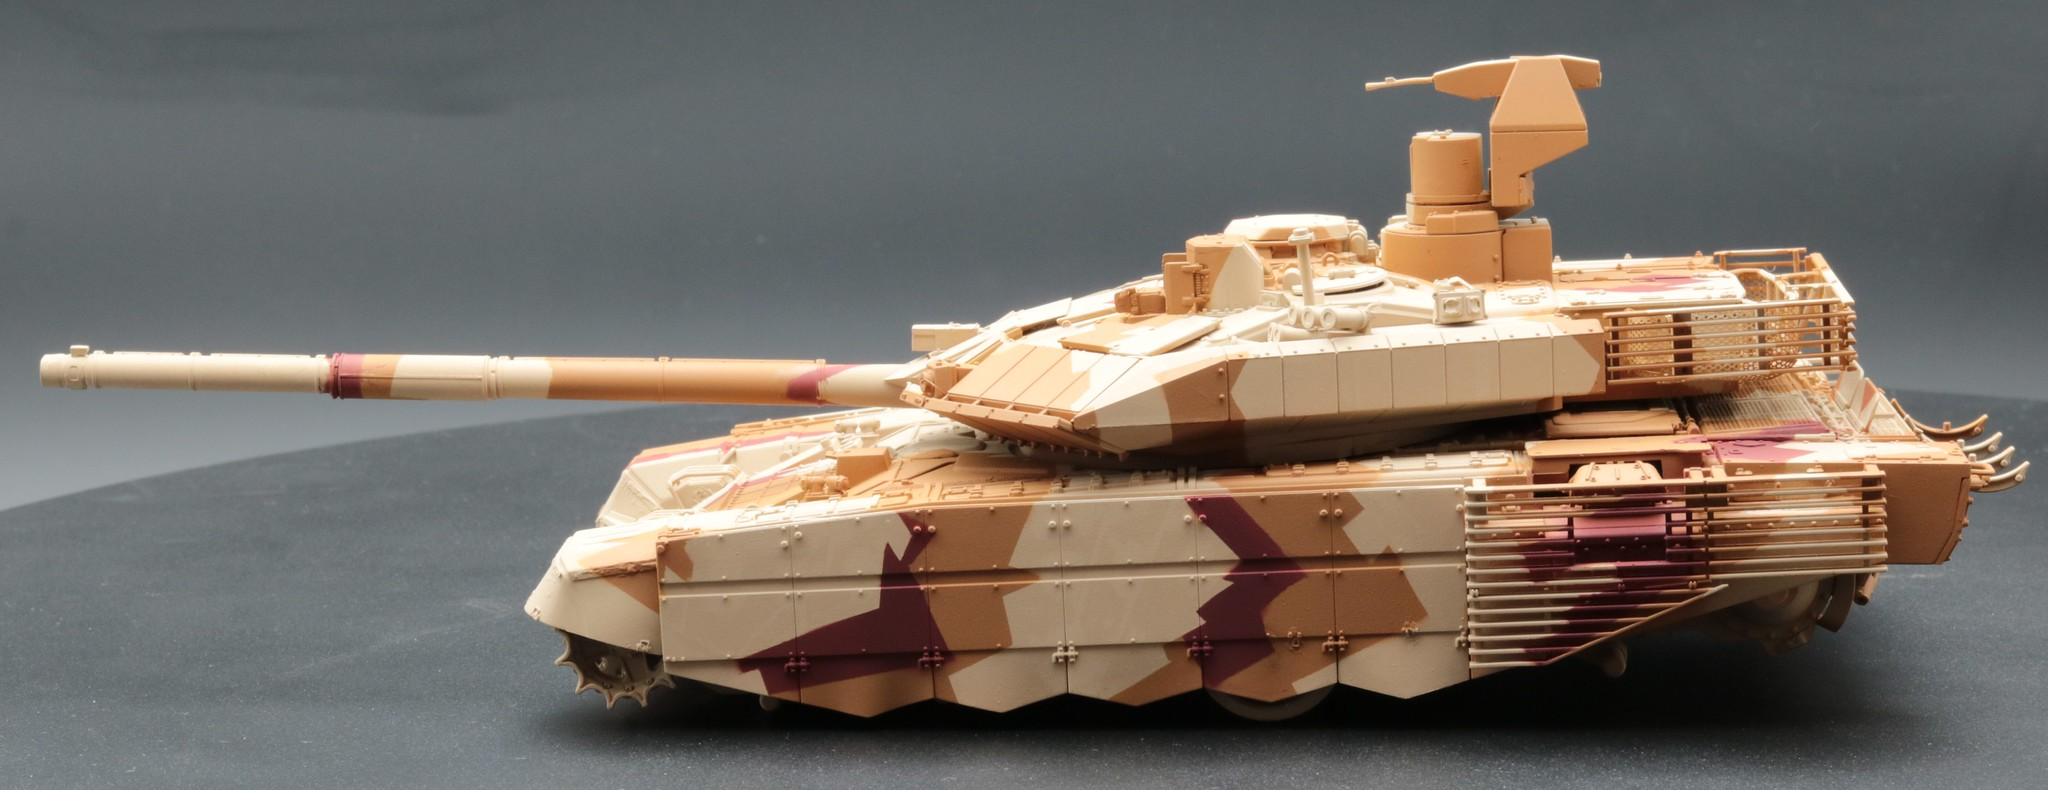 T-90 MS camouflage expo Russe 2013